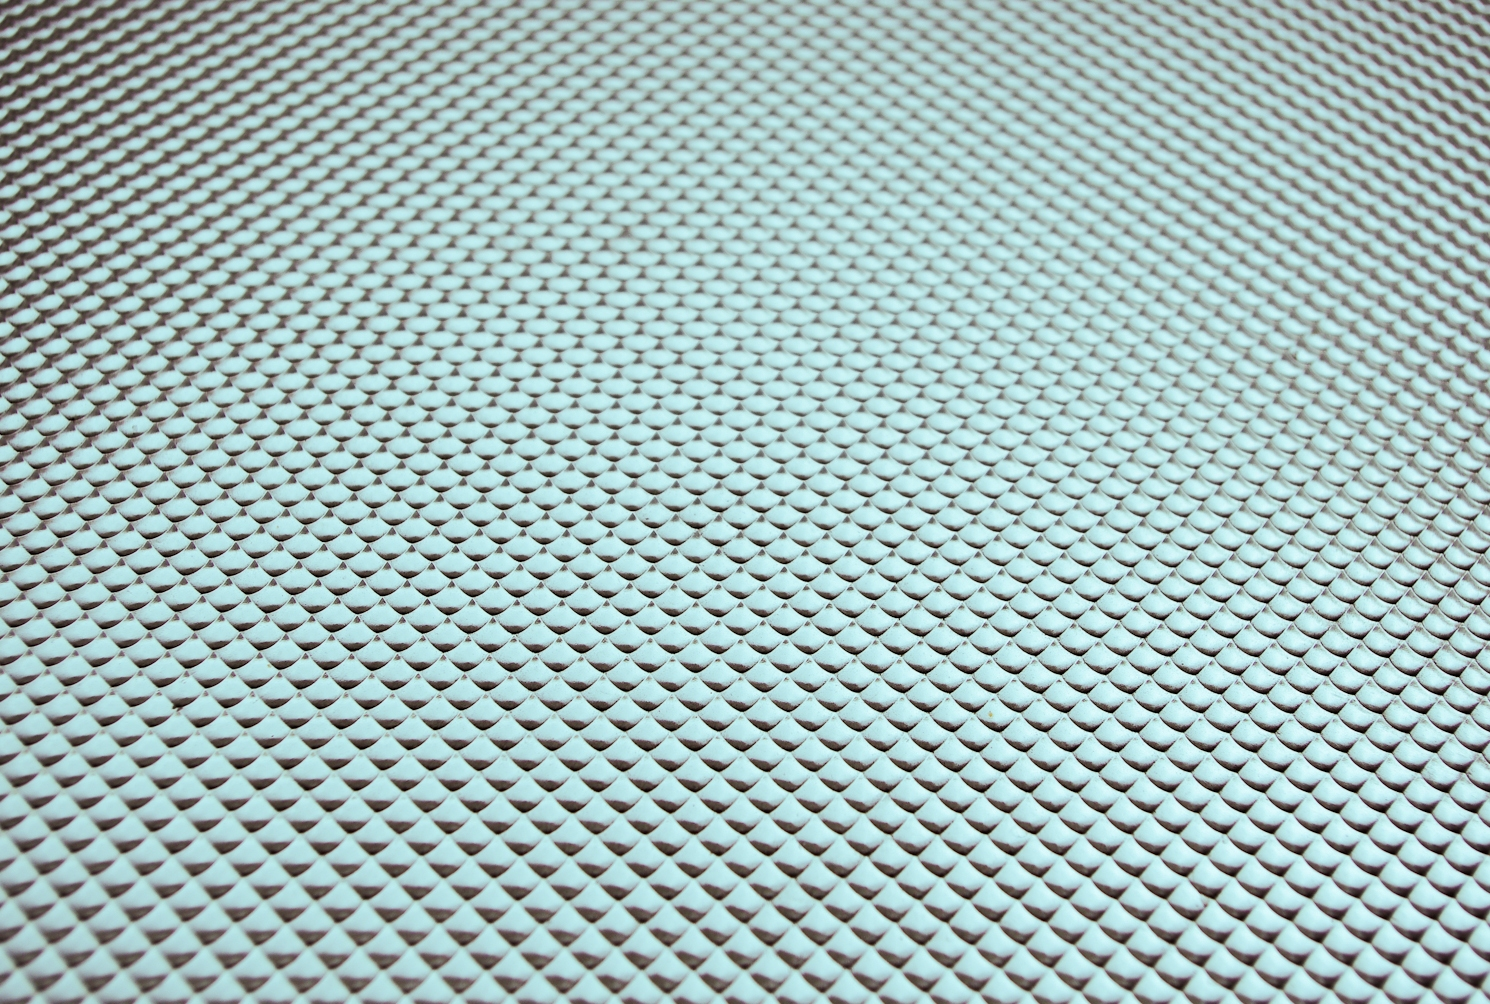 Glass Pavers Hdg Building Materials